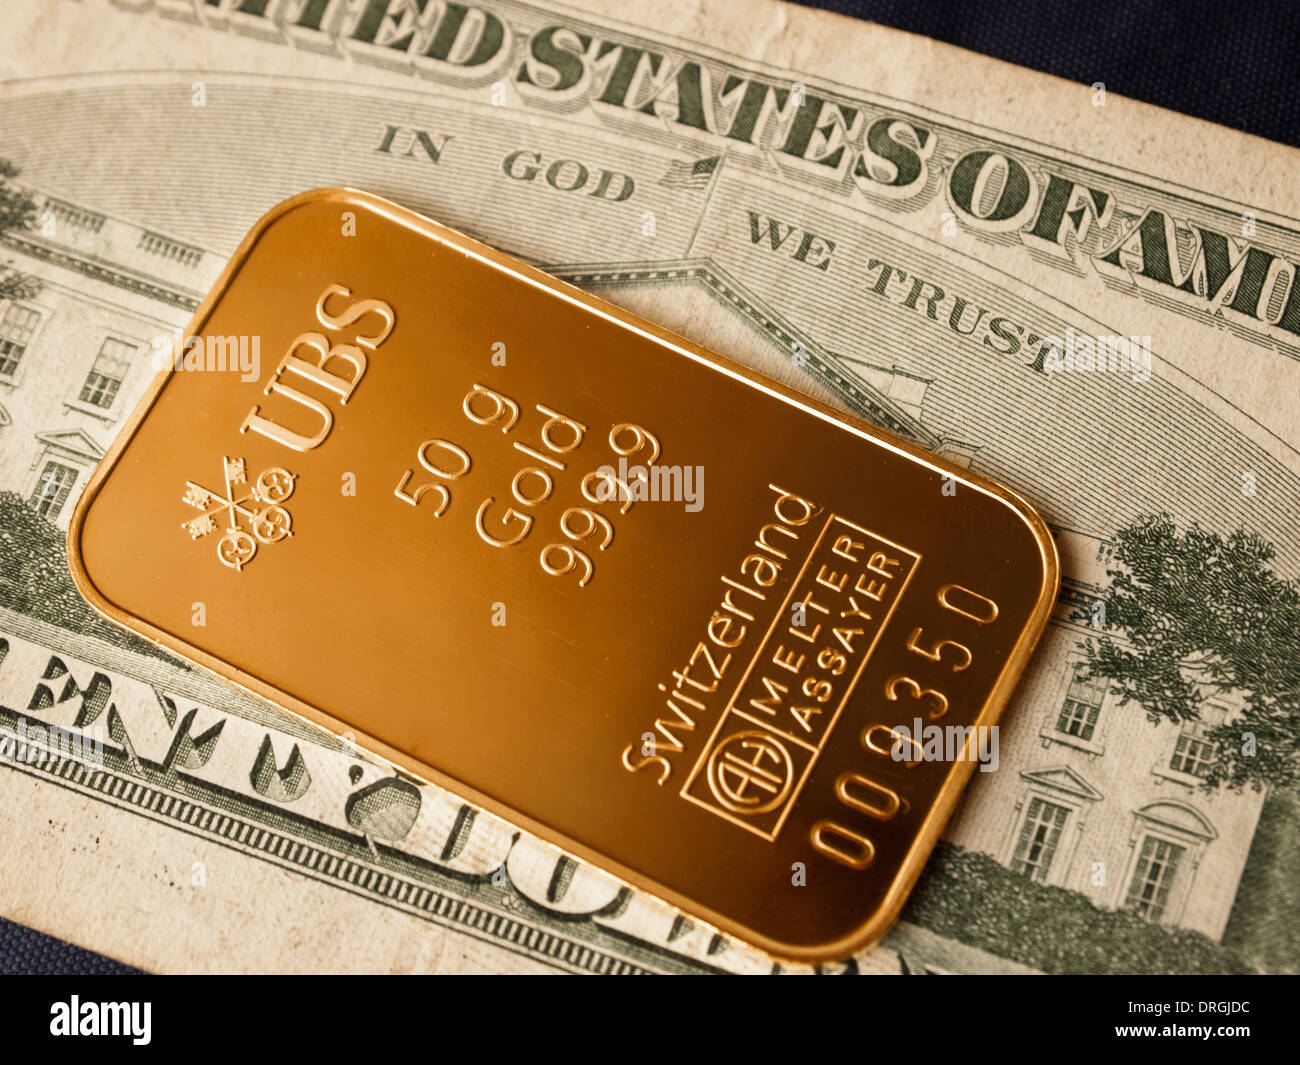 A 50g gold ingot issued by the Swiss bank UBSon  US dollar note - Stock Image